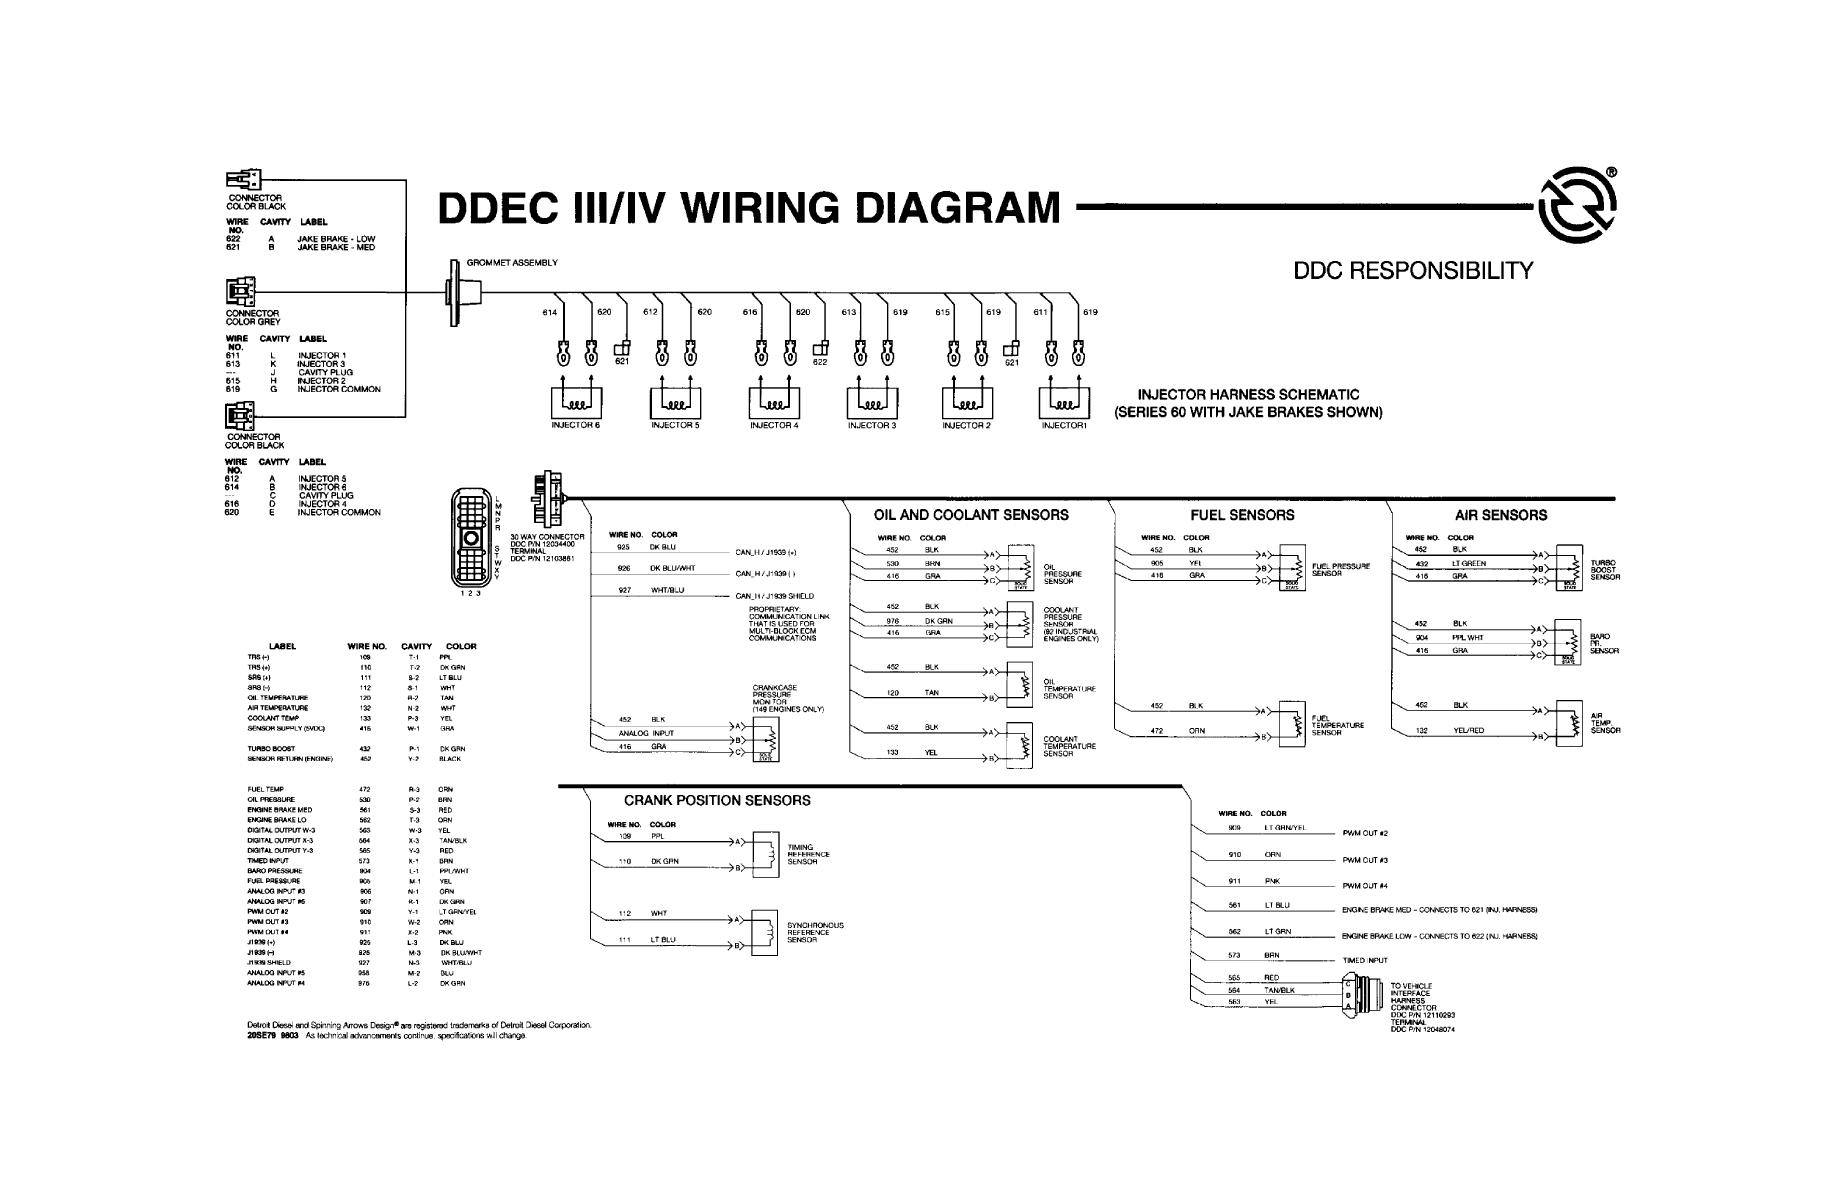 hight resolution of ddec iv wiring diagram guide and troubleshooting of wiring diagram u2022detroit ddec ii wiring diagram